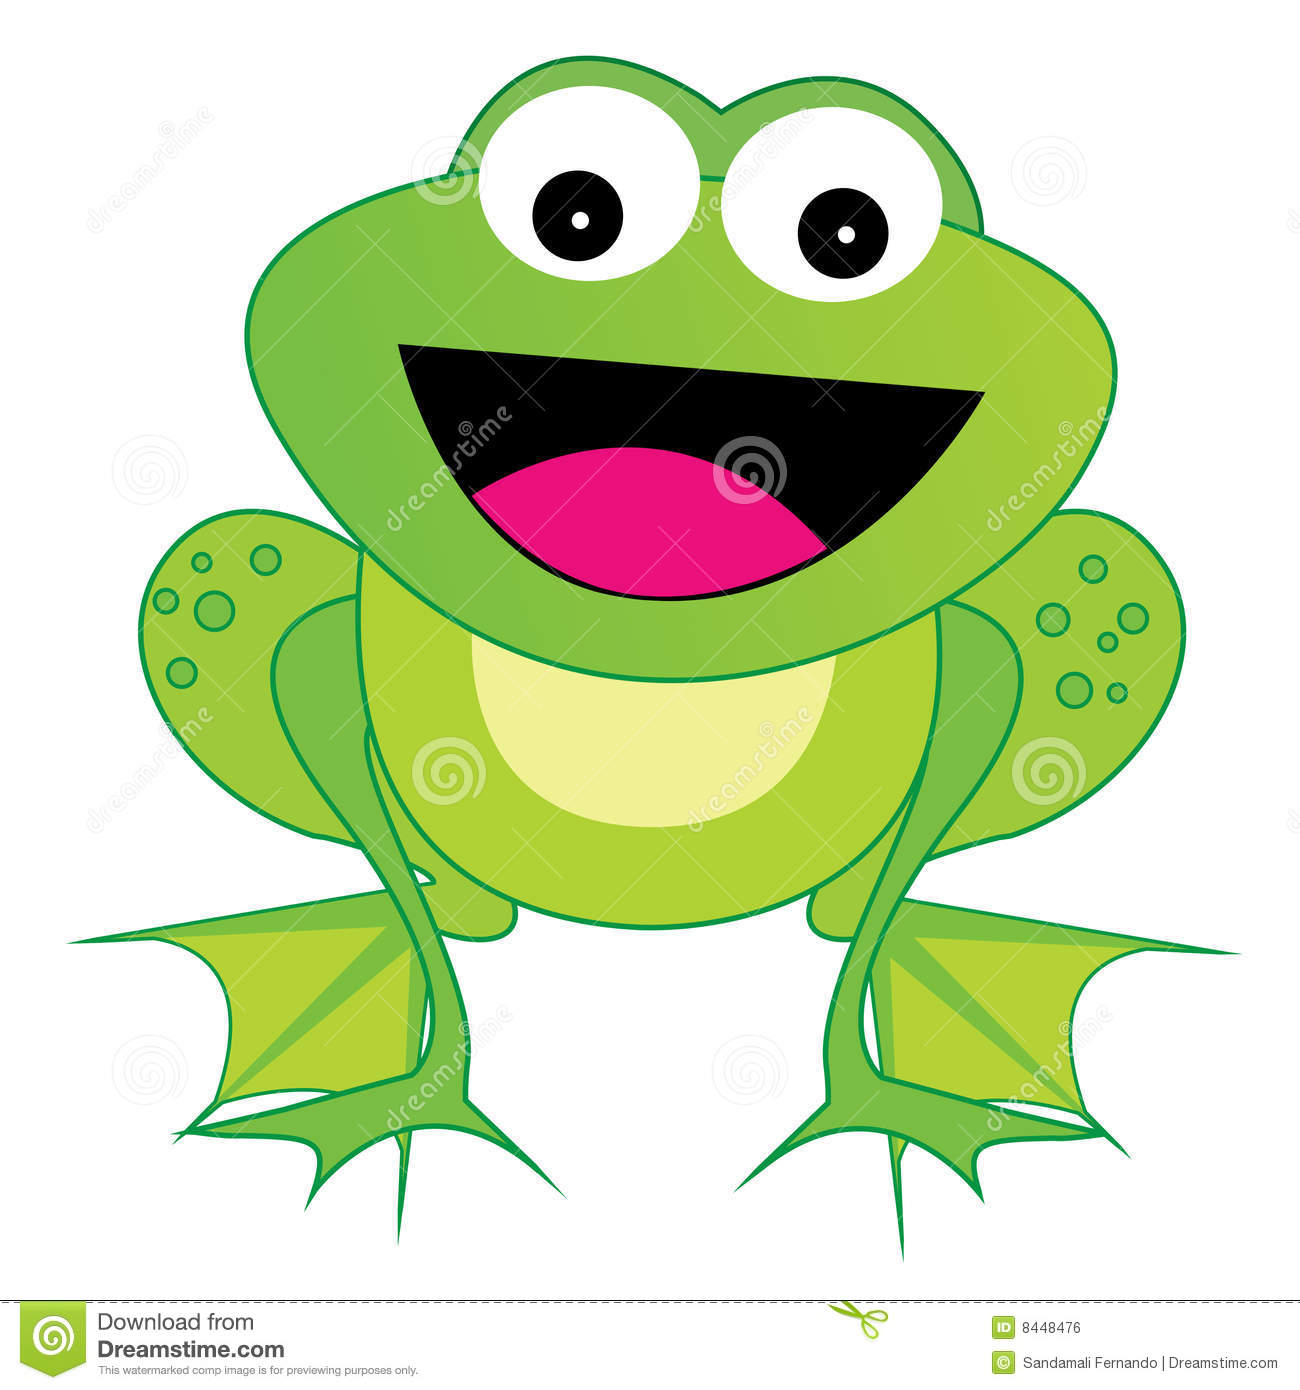 Frog Vector Eps Royalty Free Stock Image Image 8448476